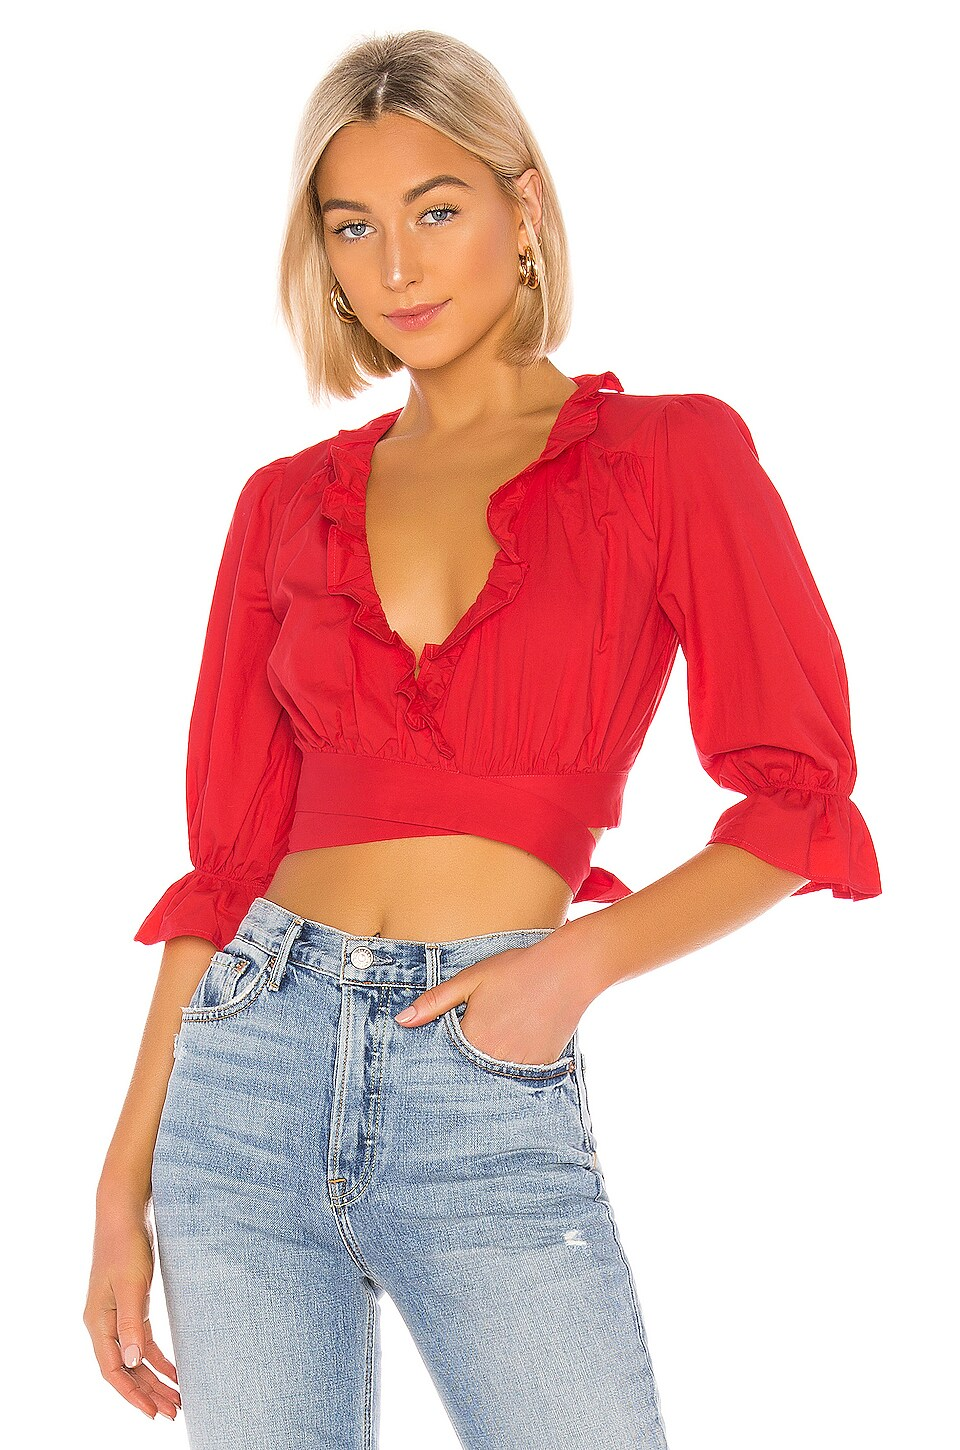 Lovers + Friends Duke Top in Cherry Red